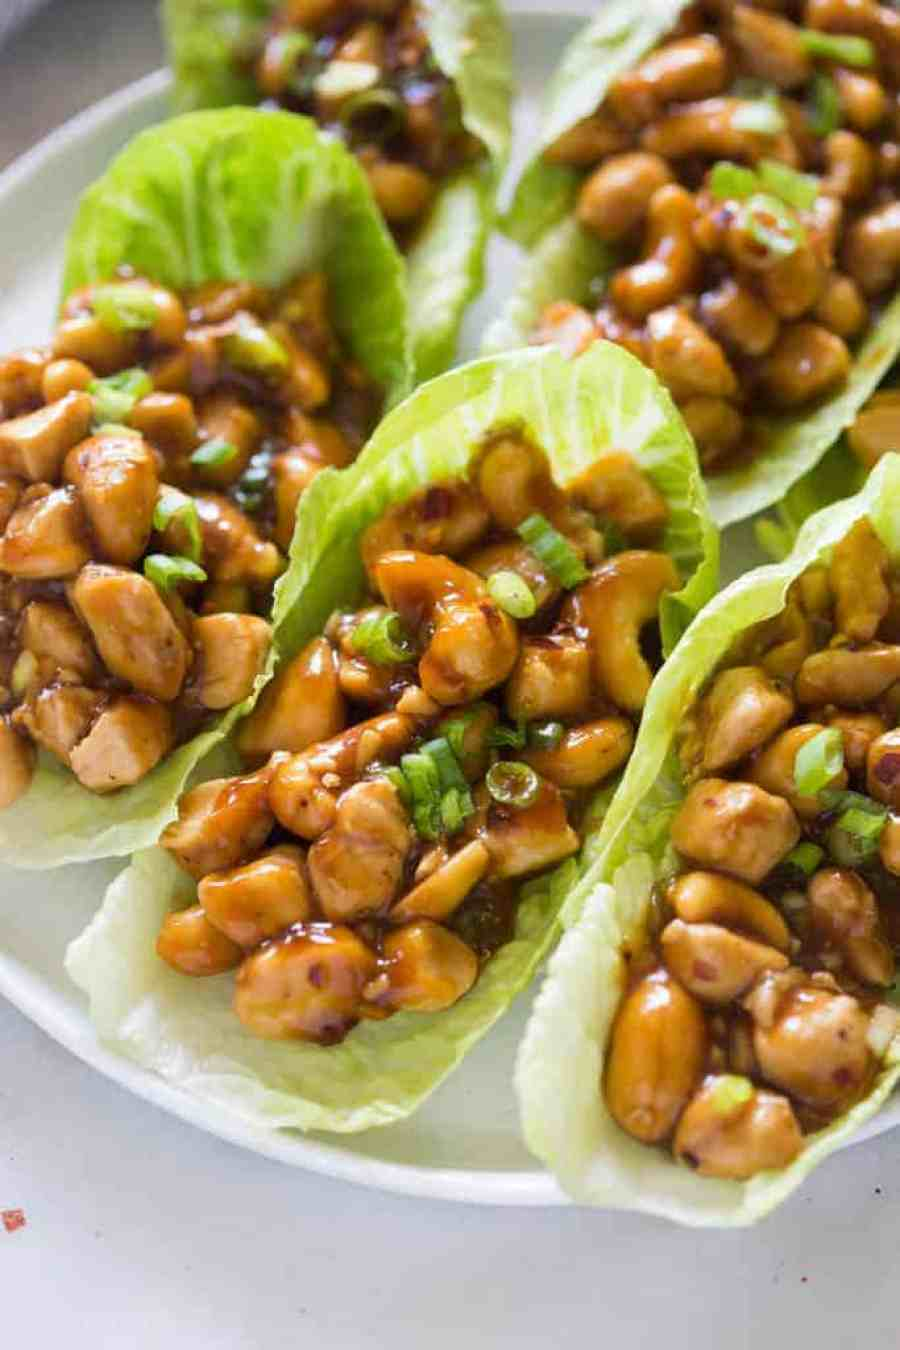 Cashew Chicken Lettuce Wraps that are better-than-take-out and made from scratch in less than 30 minutes! Grilled chicken smothered in the tastiest general-tso-inspired sauce with crunchy cashews, spooned into a crisp green lettuce cup. | tastesbetterfromscratch.com